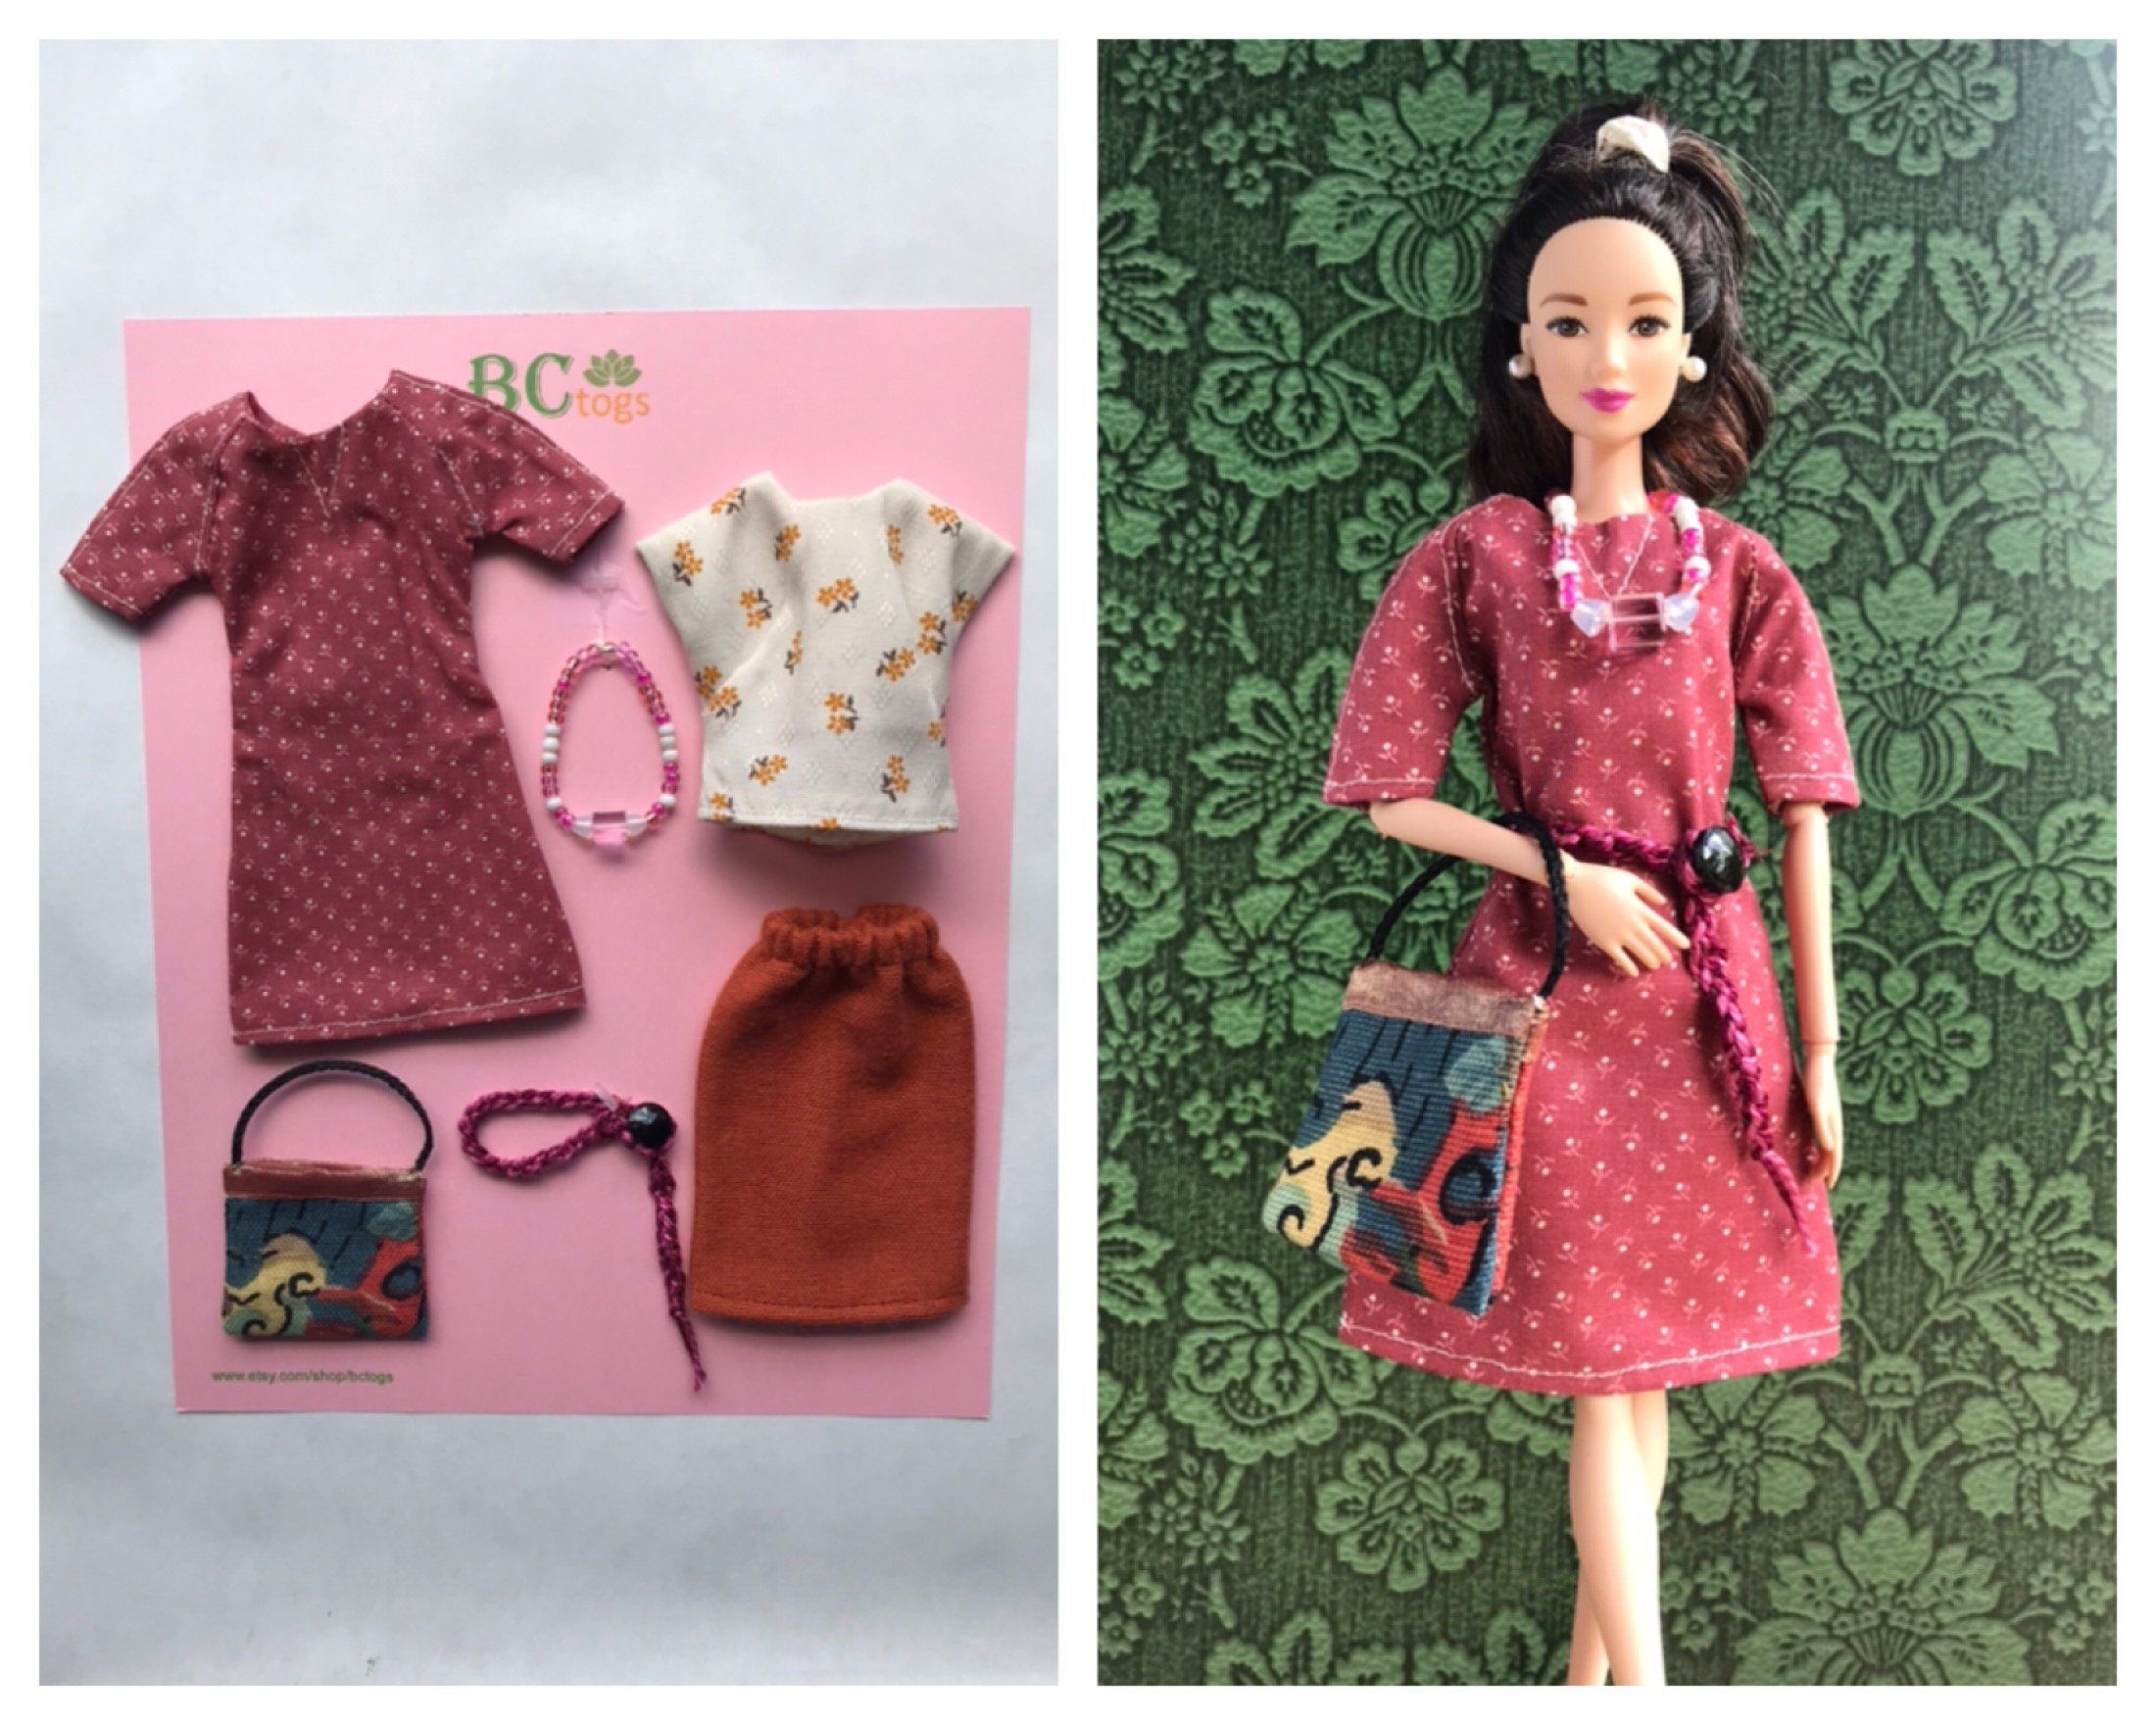 Handmade Barbie Outfit with Accessories . Barbie Clothes . Barbie Doll Clothes. Barbie Doll Outfit.  Barbie Fashions #crochetedbarbiedollclothes